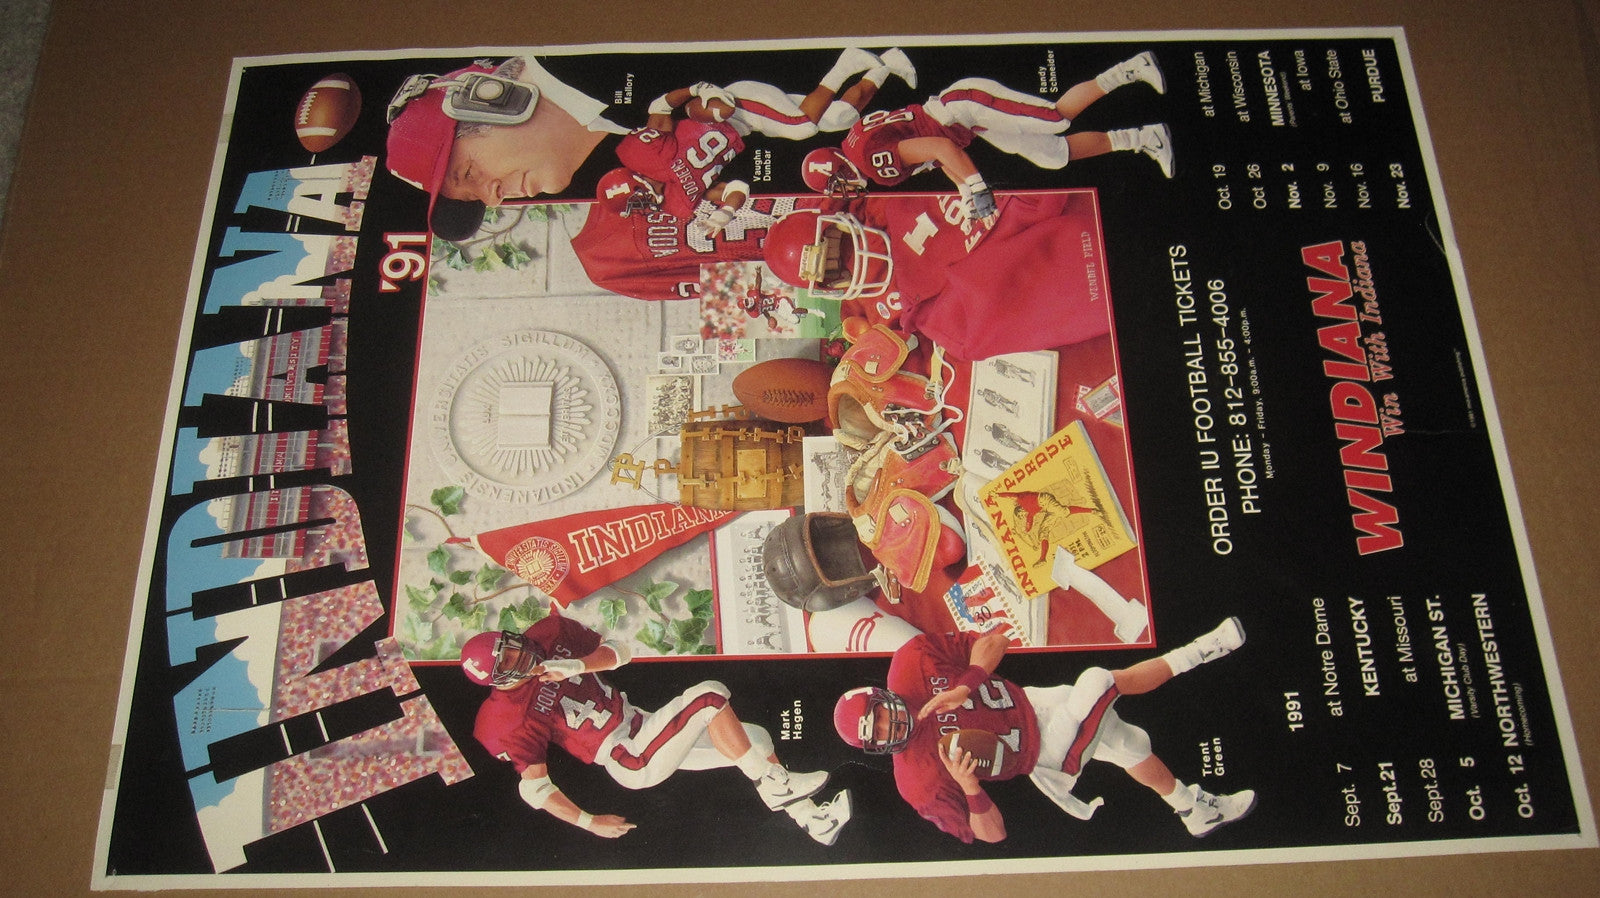 1991 Indiana University Football Schedule Poster 17x24 - Vintage Indy Sports